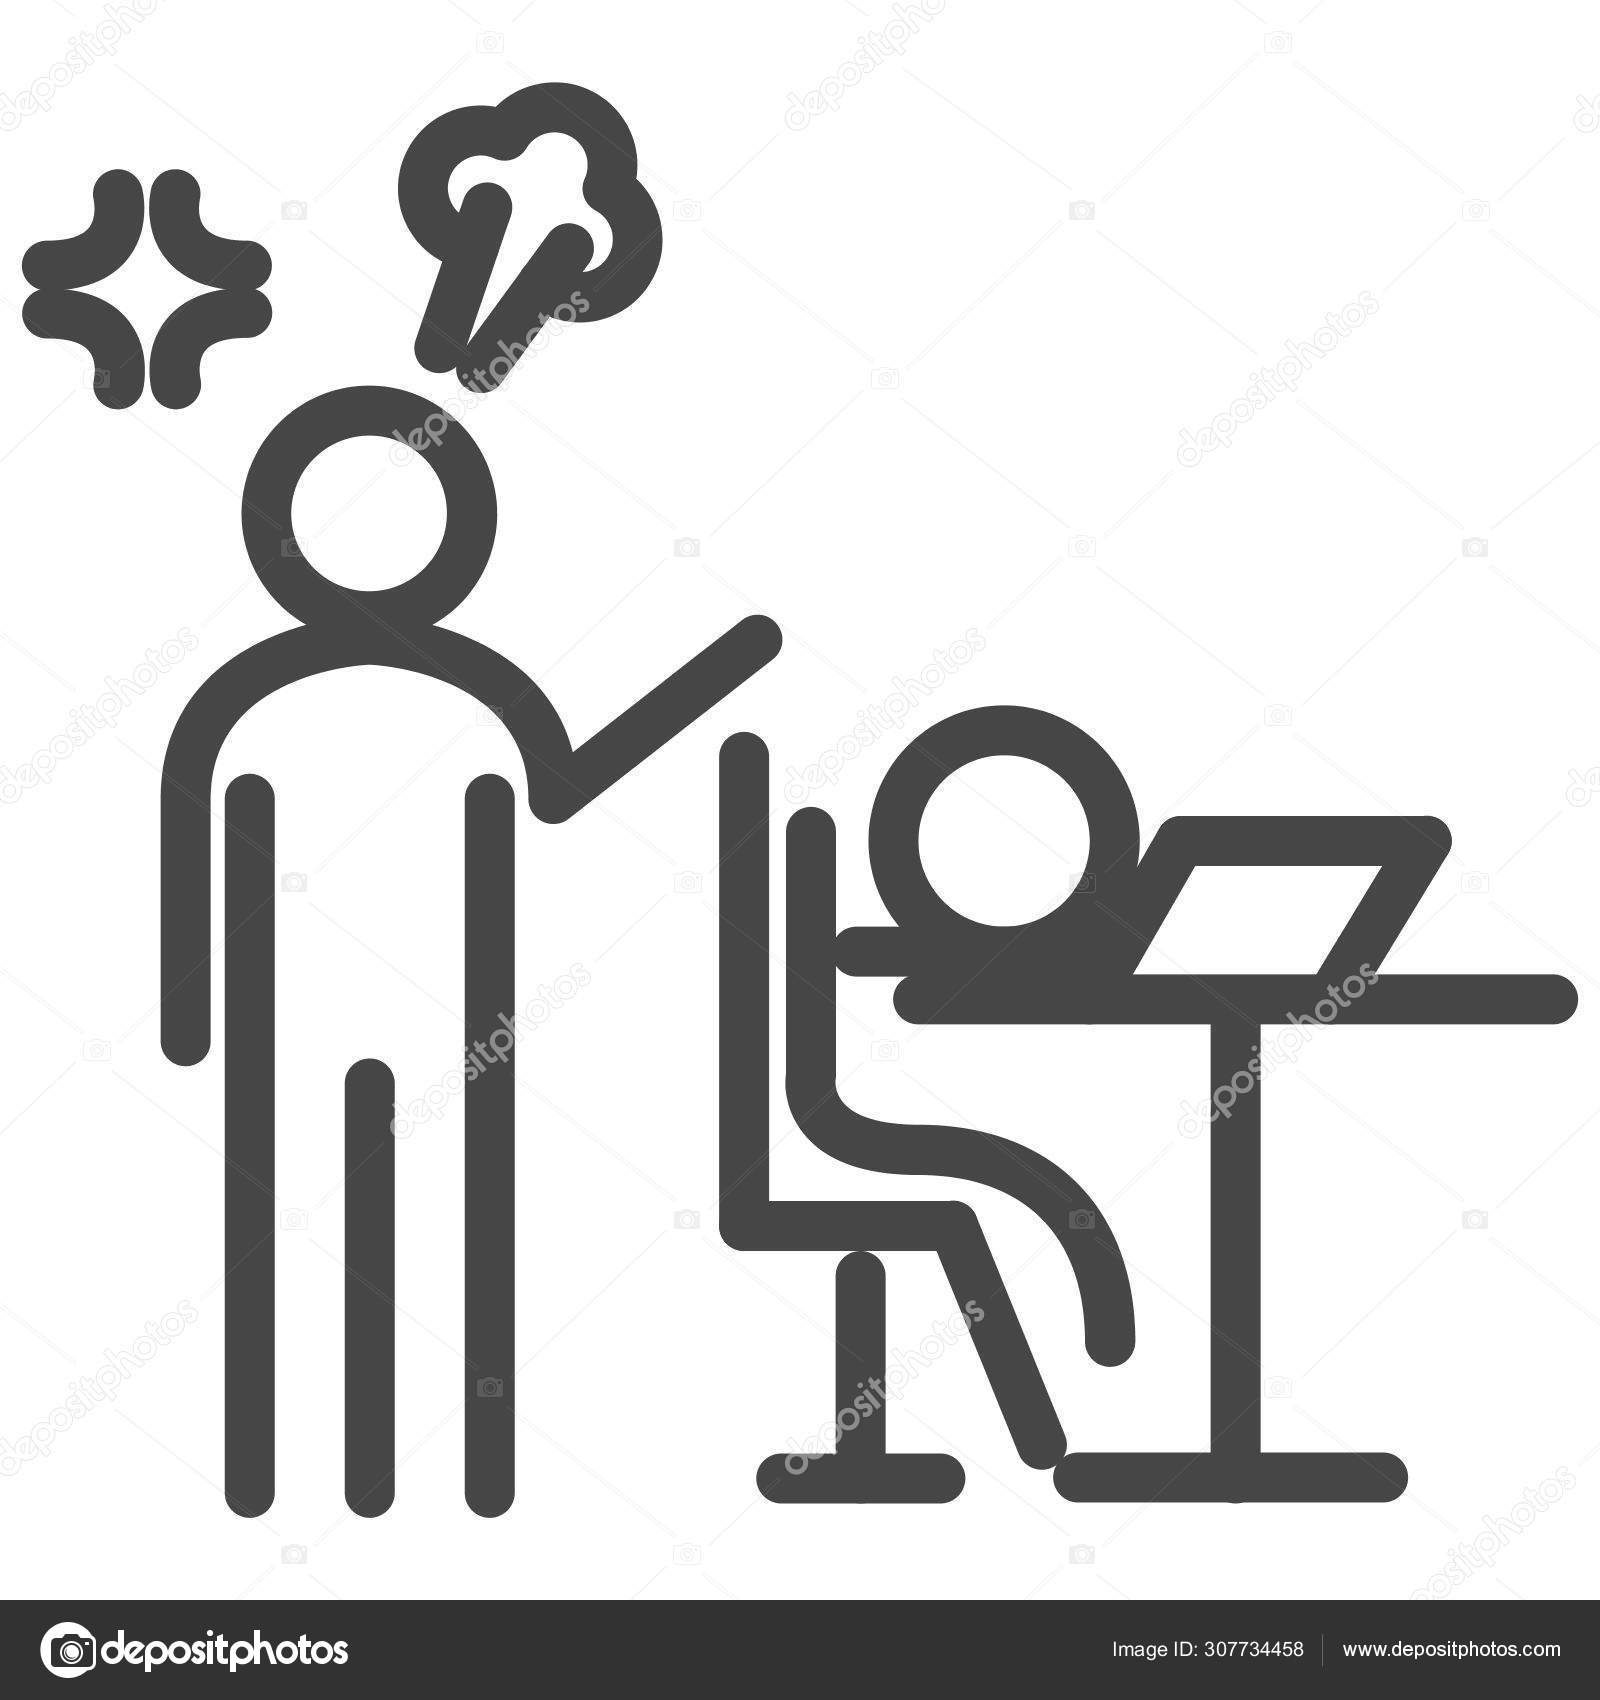 Boss Web Icon Simple Design Stock Vector C Iconscout 307734458 Bossweb.com is tracked by us since november, 2014. depositphotos